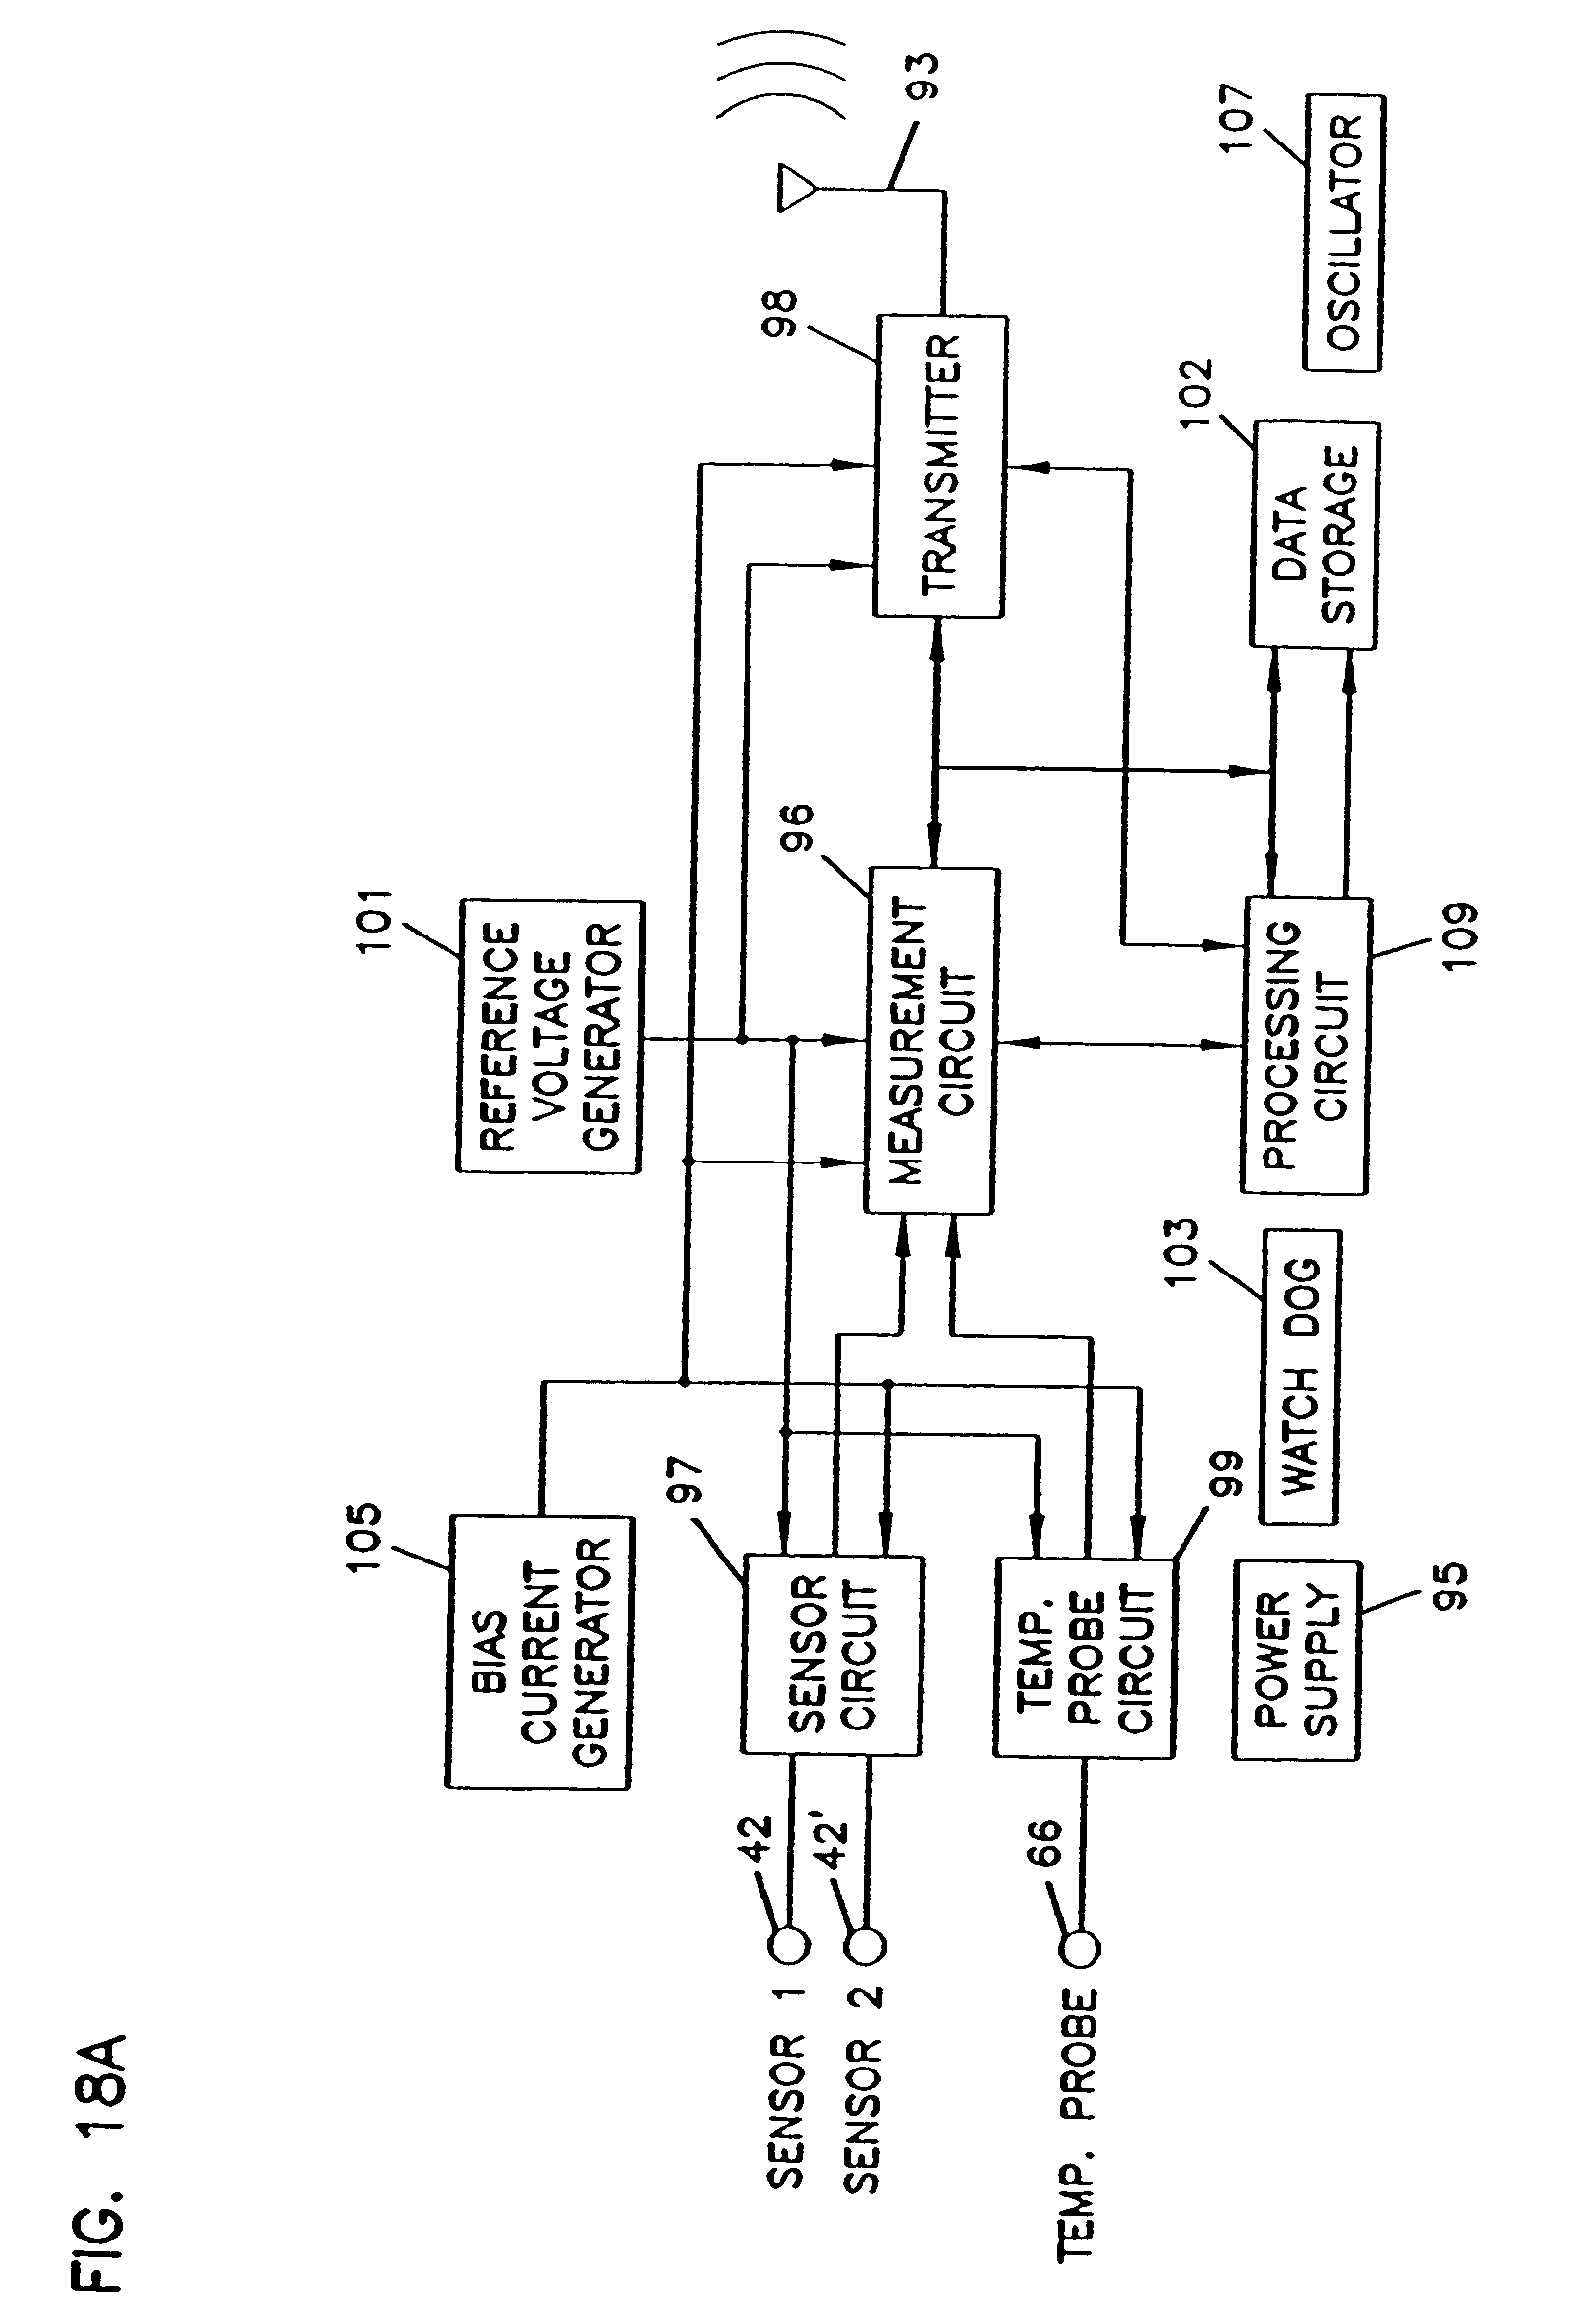 Us8255031b2 Analyte Monitoring Device And Methods Of Use Google Processcontrol Delabs Schematics Electronic Circuit Patents